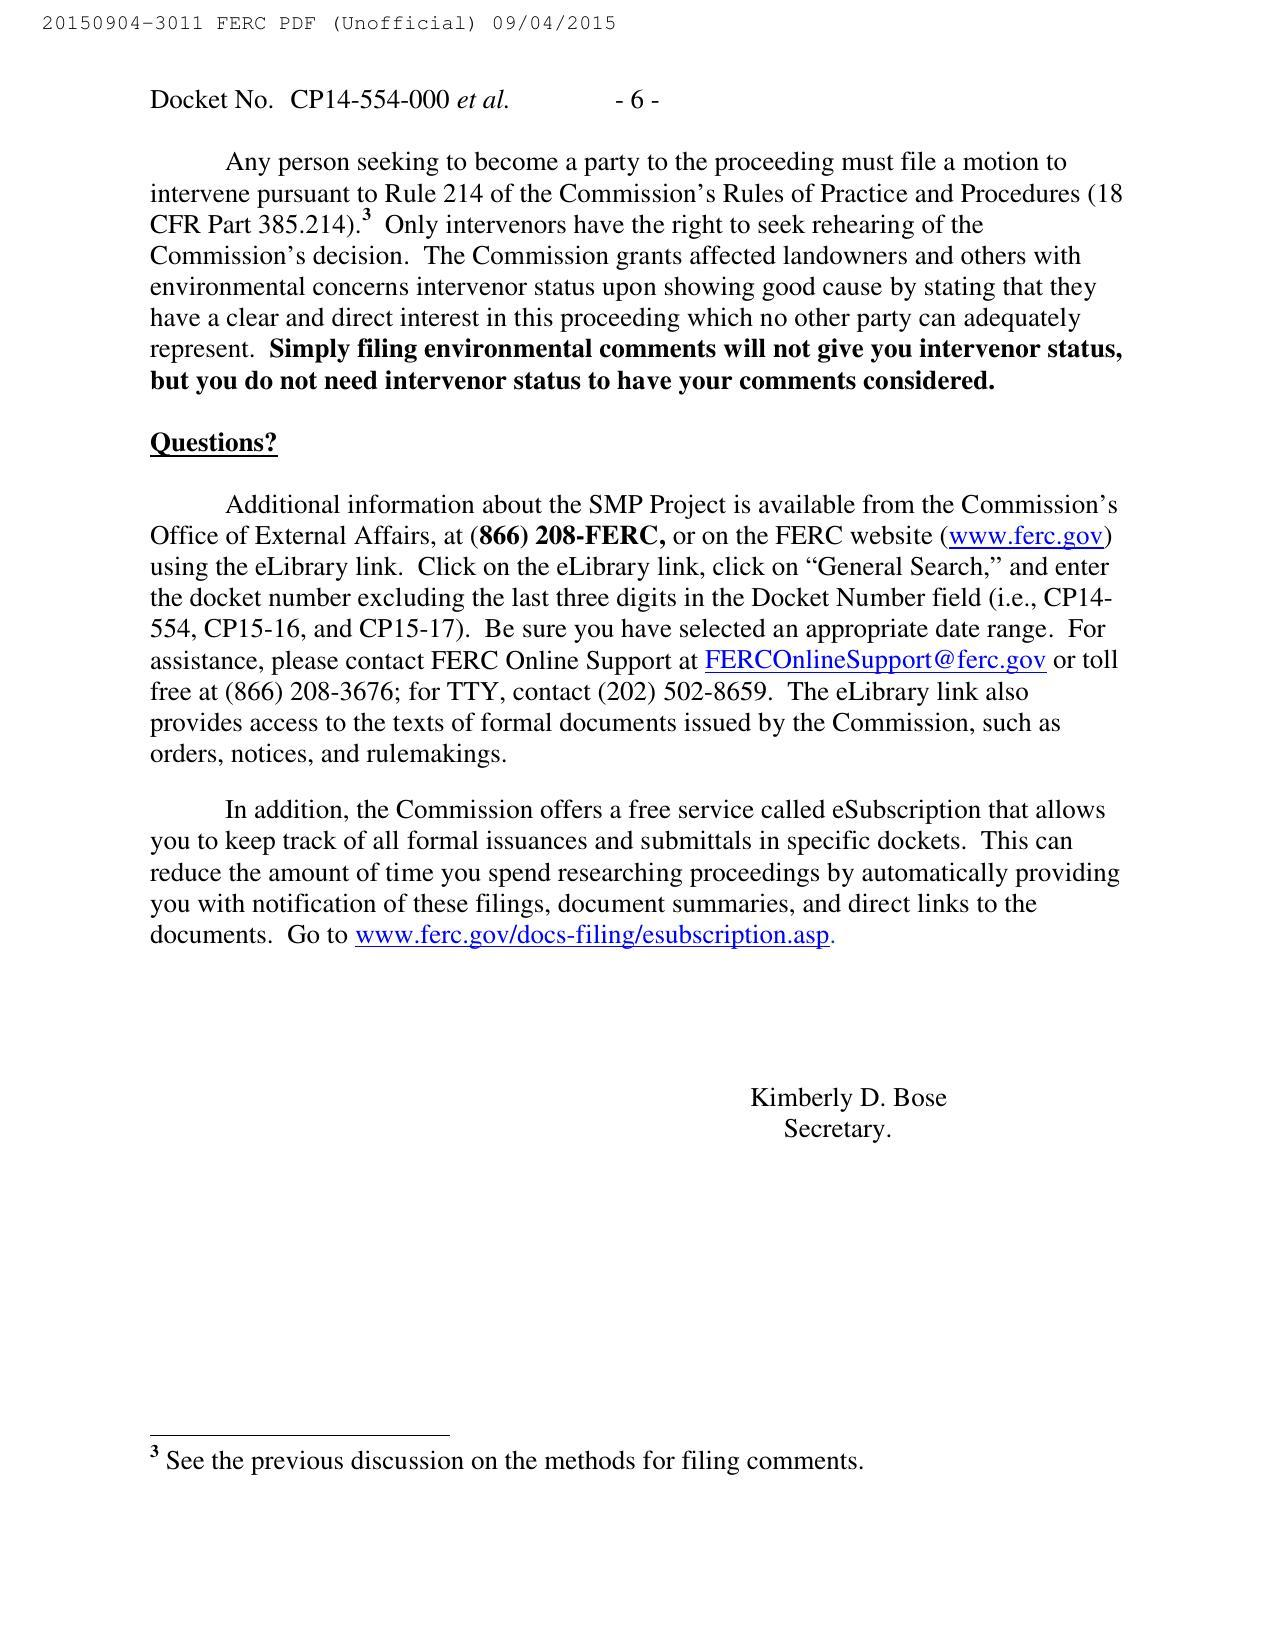 1275x1650 Motions to intervene, in Notice of Availability of Draft Environmental Impact Statement, by FERC, for SpectraBusters.org, 4 September 2015